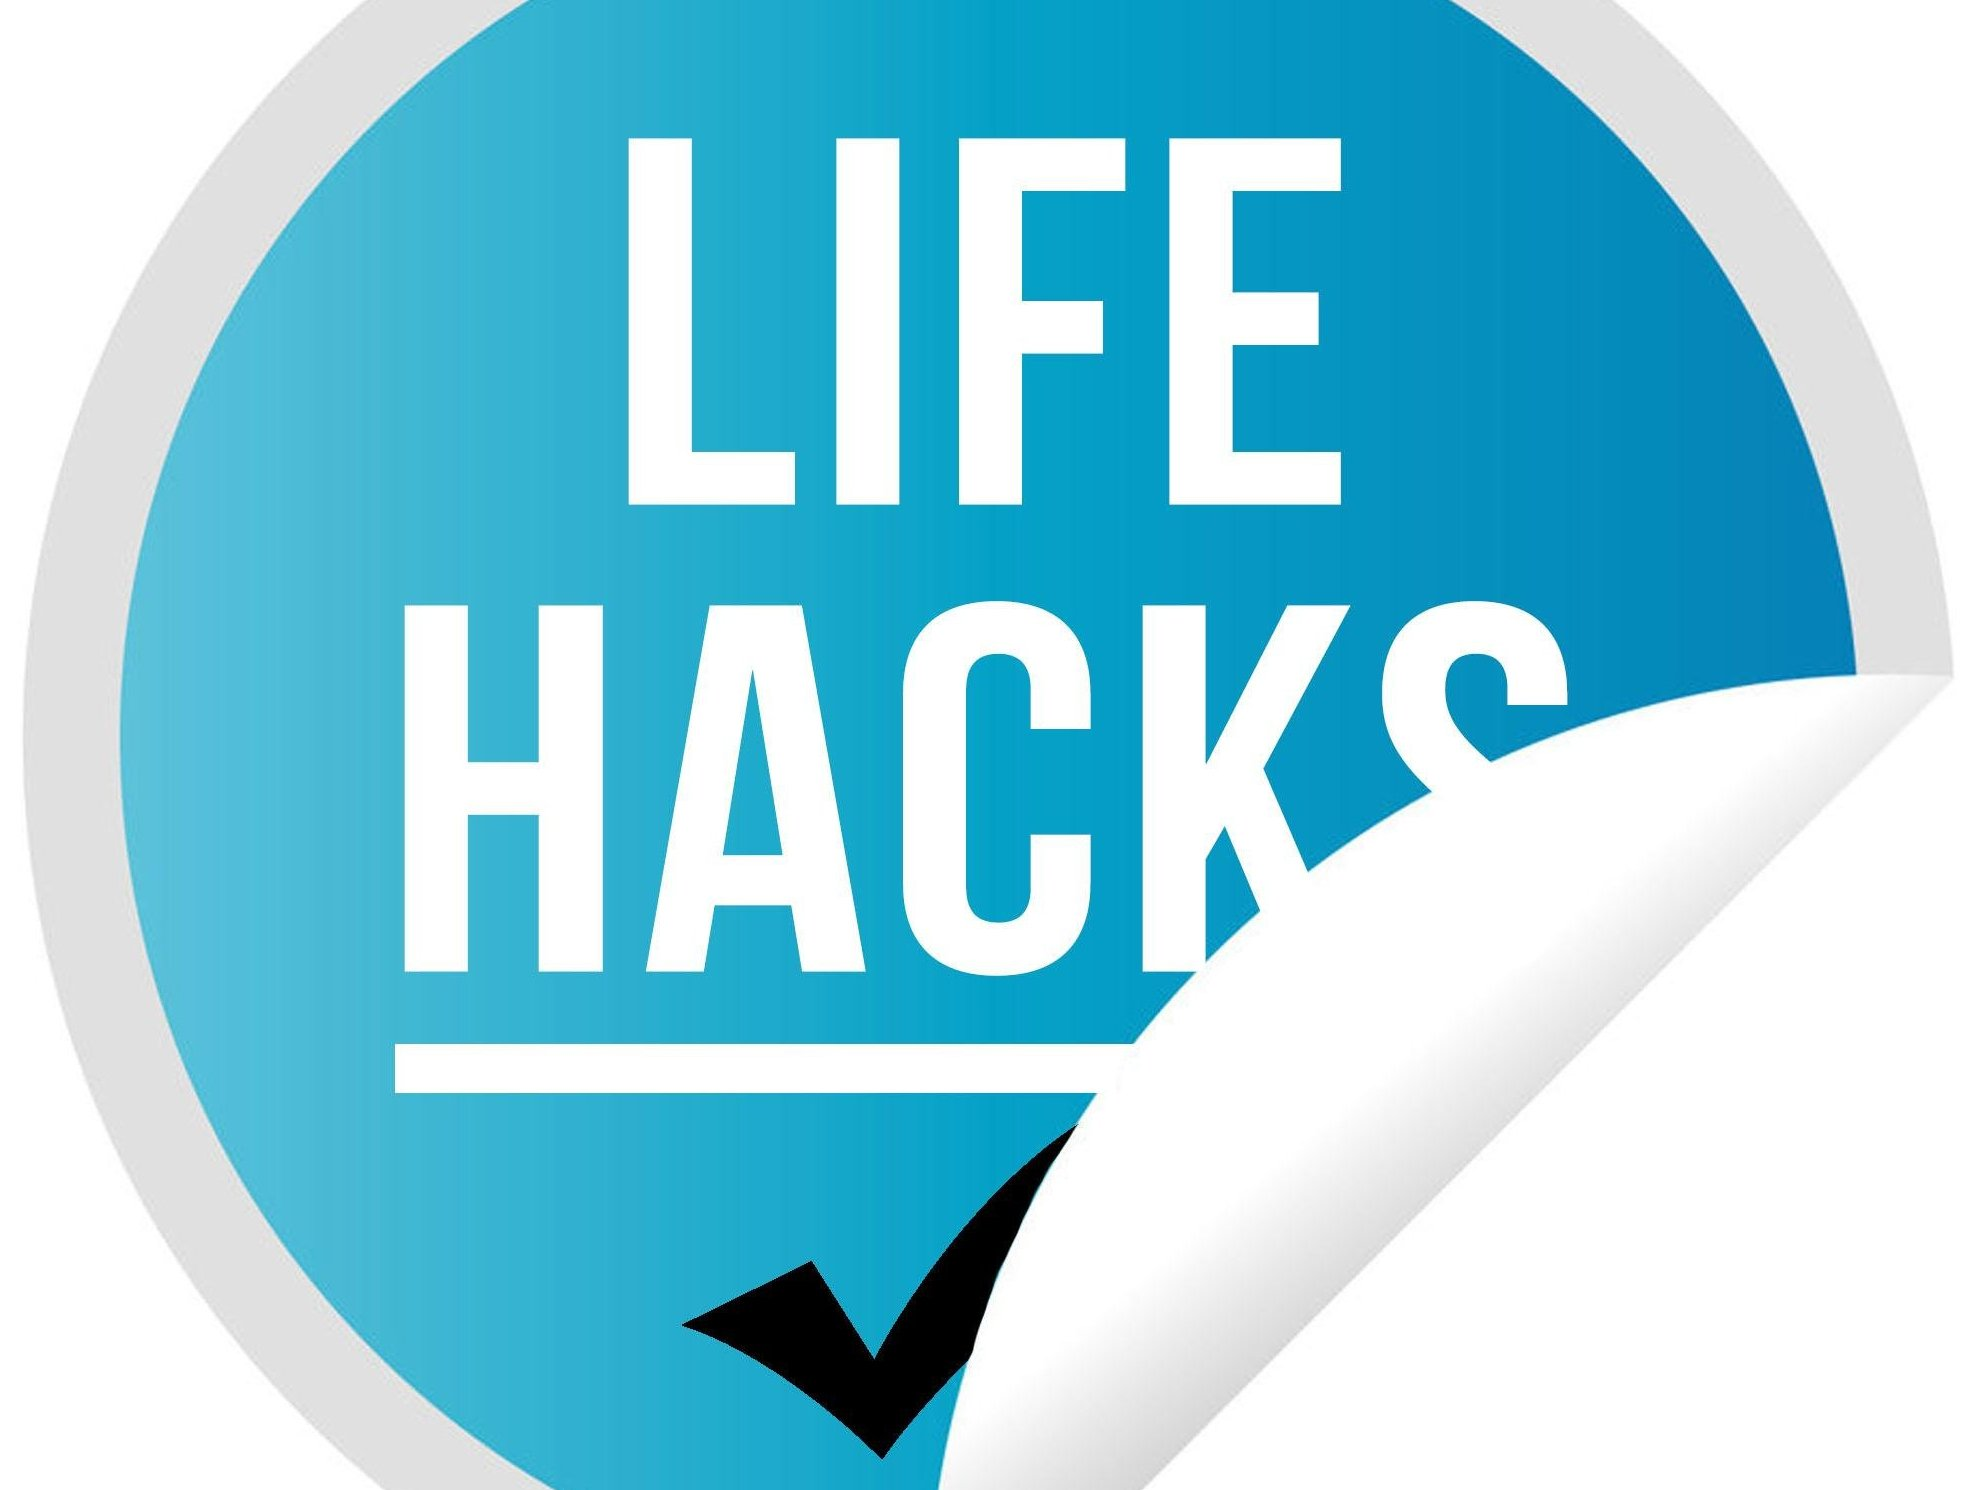 Life Hacks, Annoying Everyday Problems, Daily Problems, Problems, Life Problems, solution to life problems, simple solutions